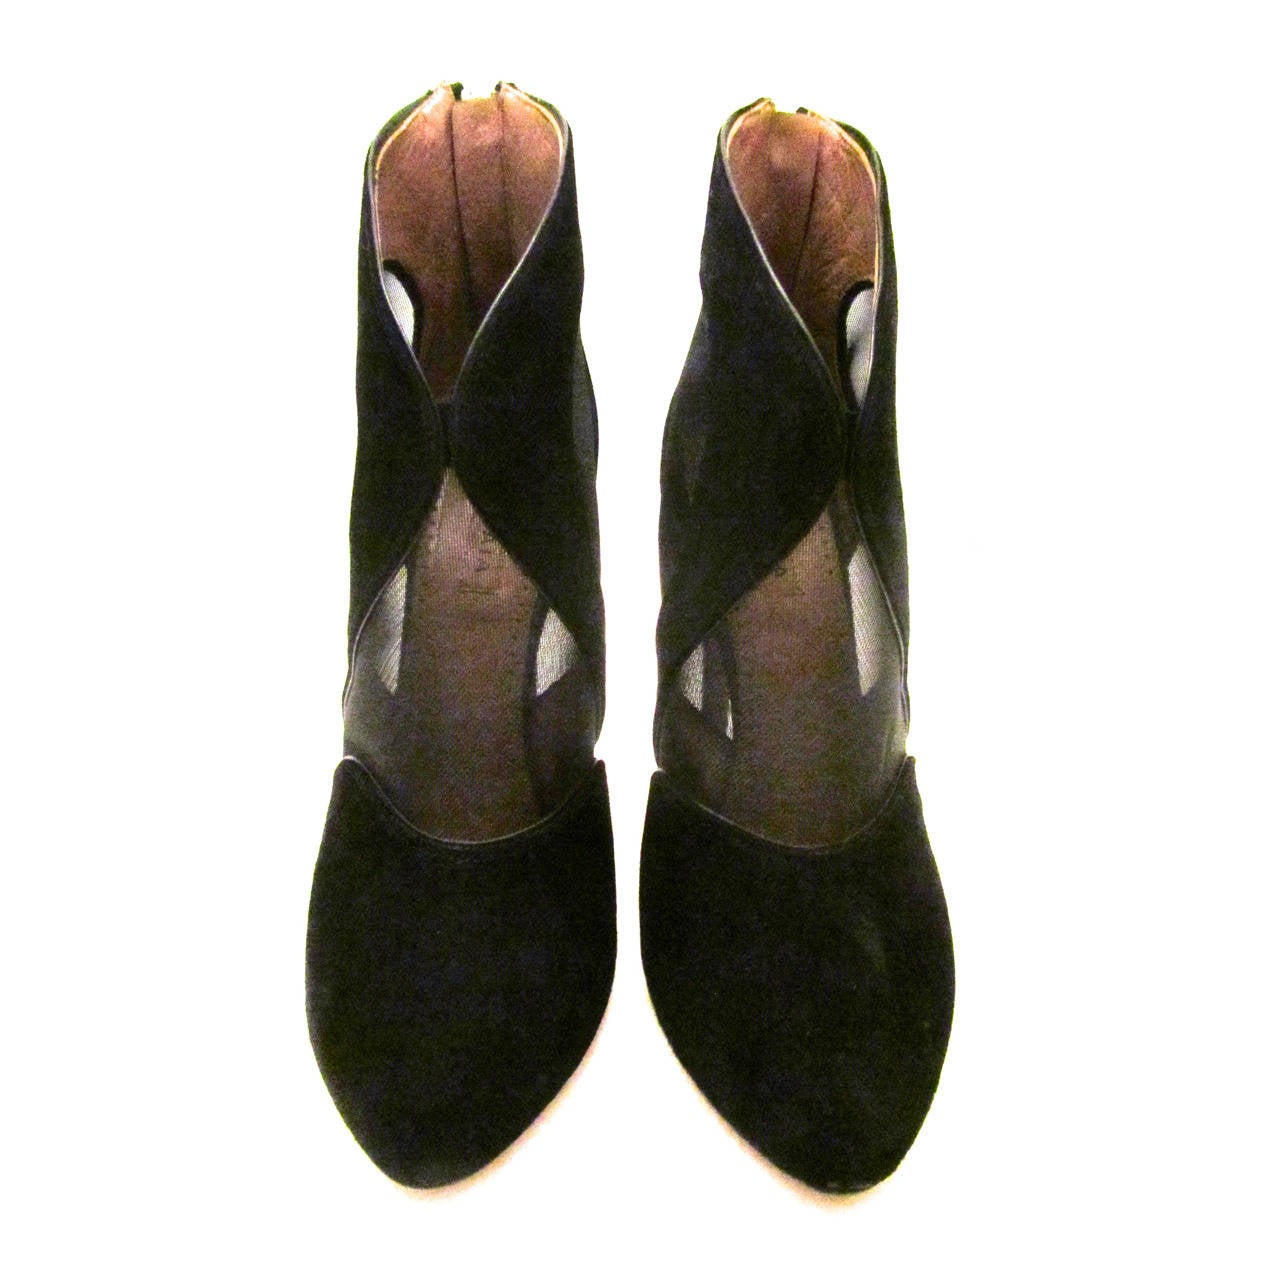 New Alaia High Heeled Boots - Black Suede and Sheer - Size 37.5